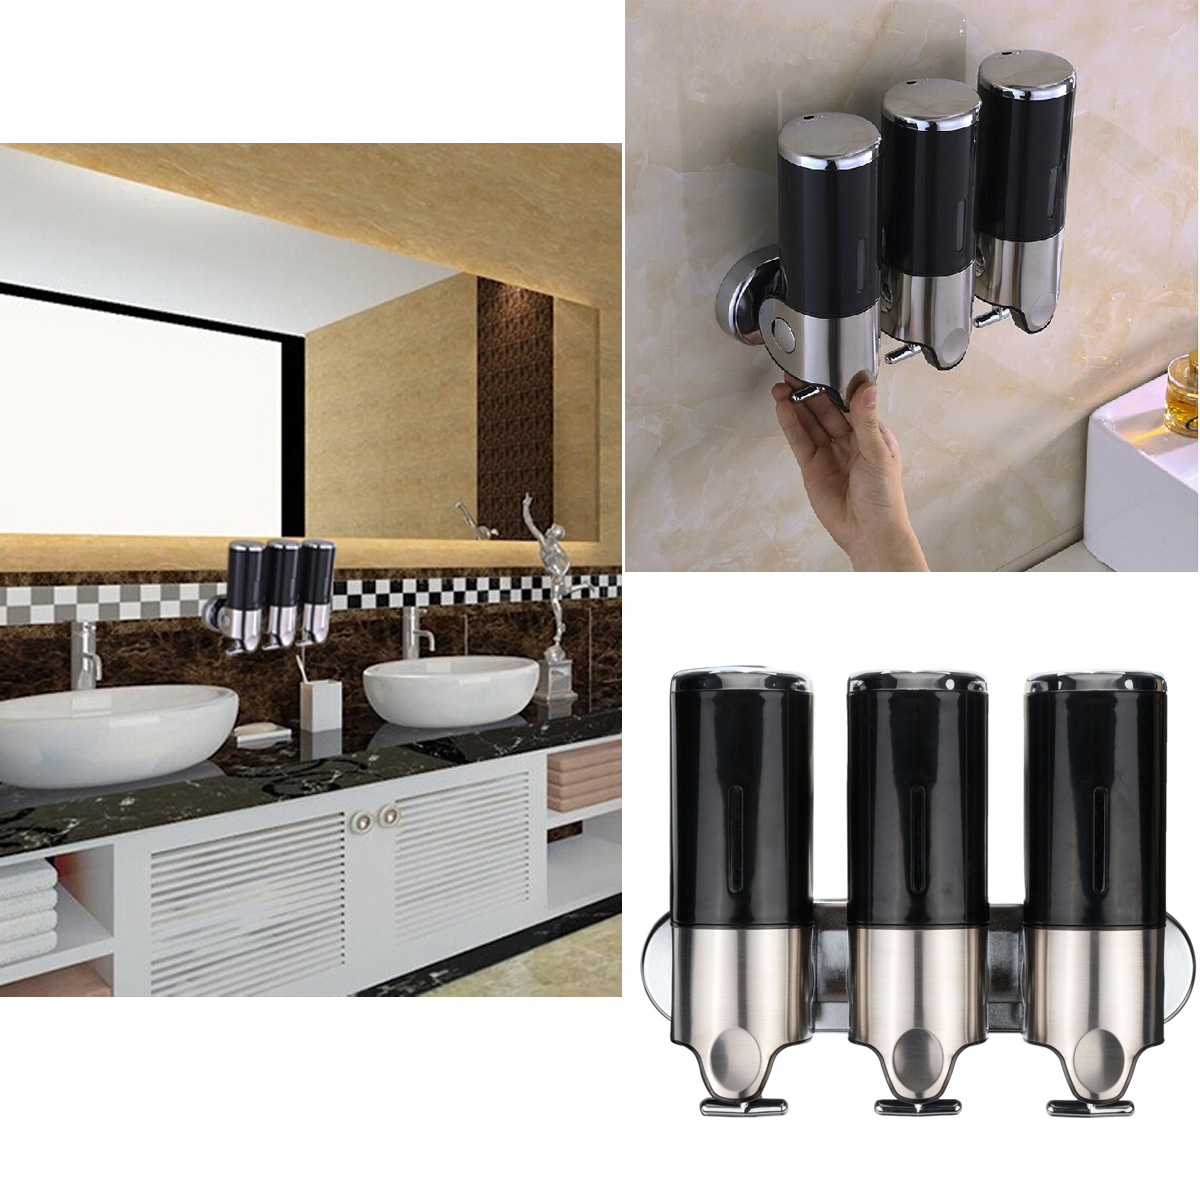 3x150ml edelstahl wandmontage seifenspender seife spender dosierer soap pumpe ebay. Black Bedroom Furniture Sets. Home Design Ideas